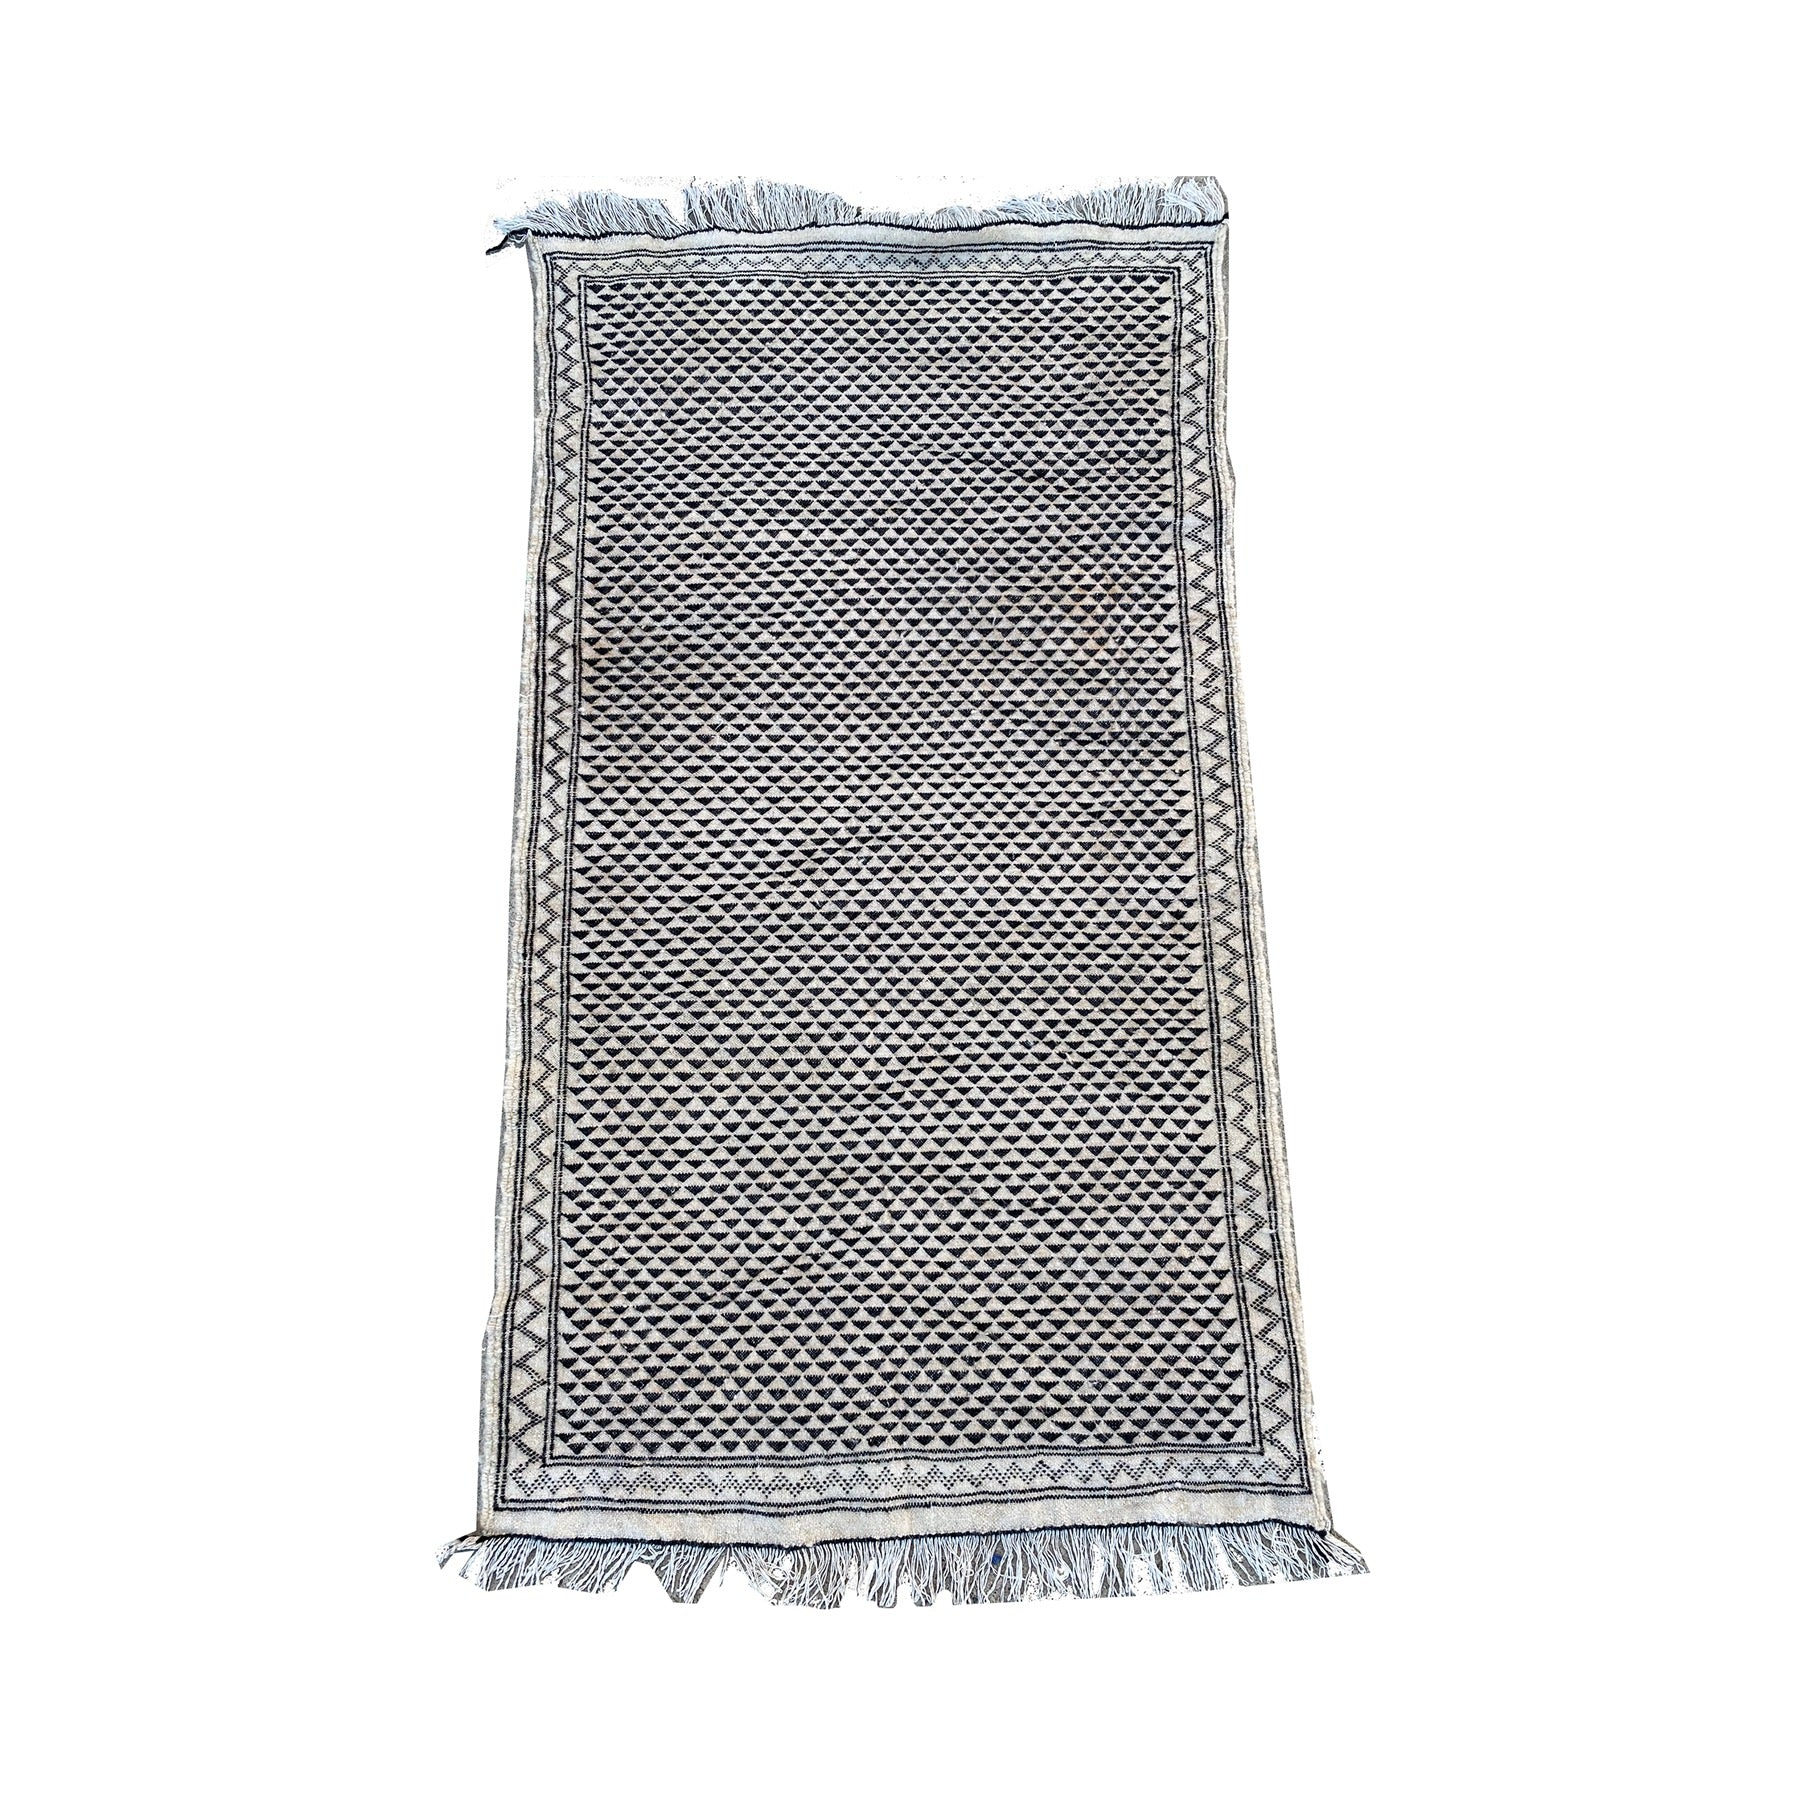 Black and white Moroccan flatweave throw rug - Kantara | Moroccan Rugs